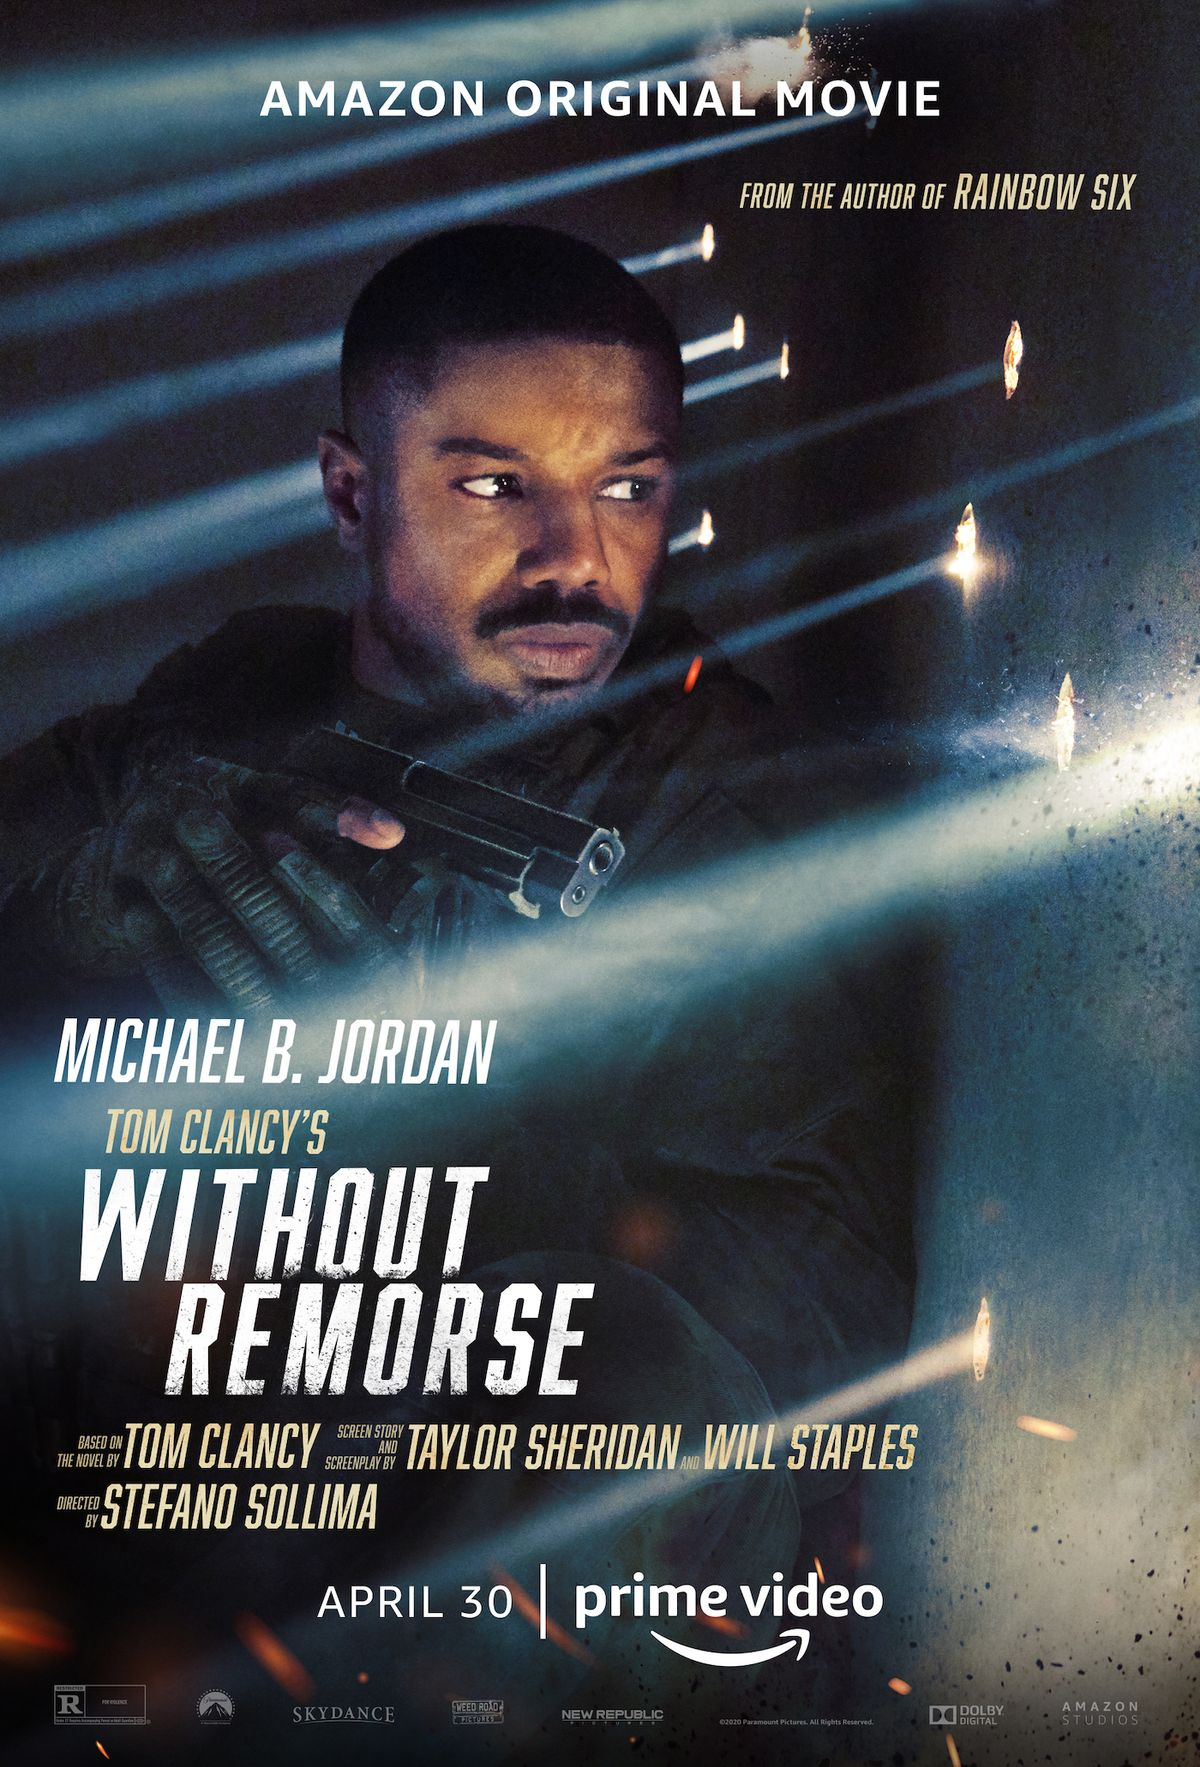 Without Remorse Trailer Reveals Michael B. Jordan in a Tom Clancy Thriller